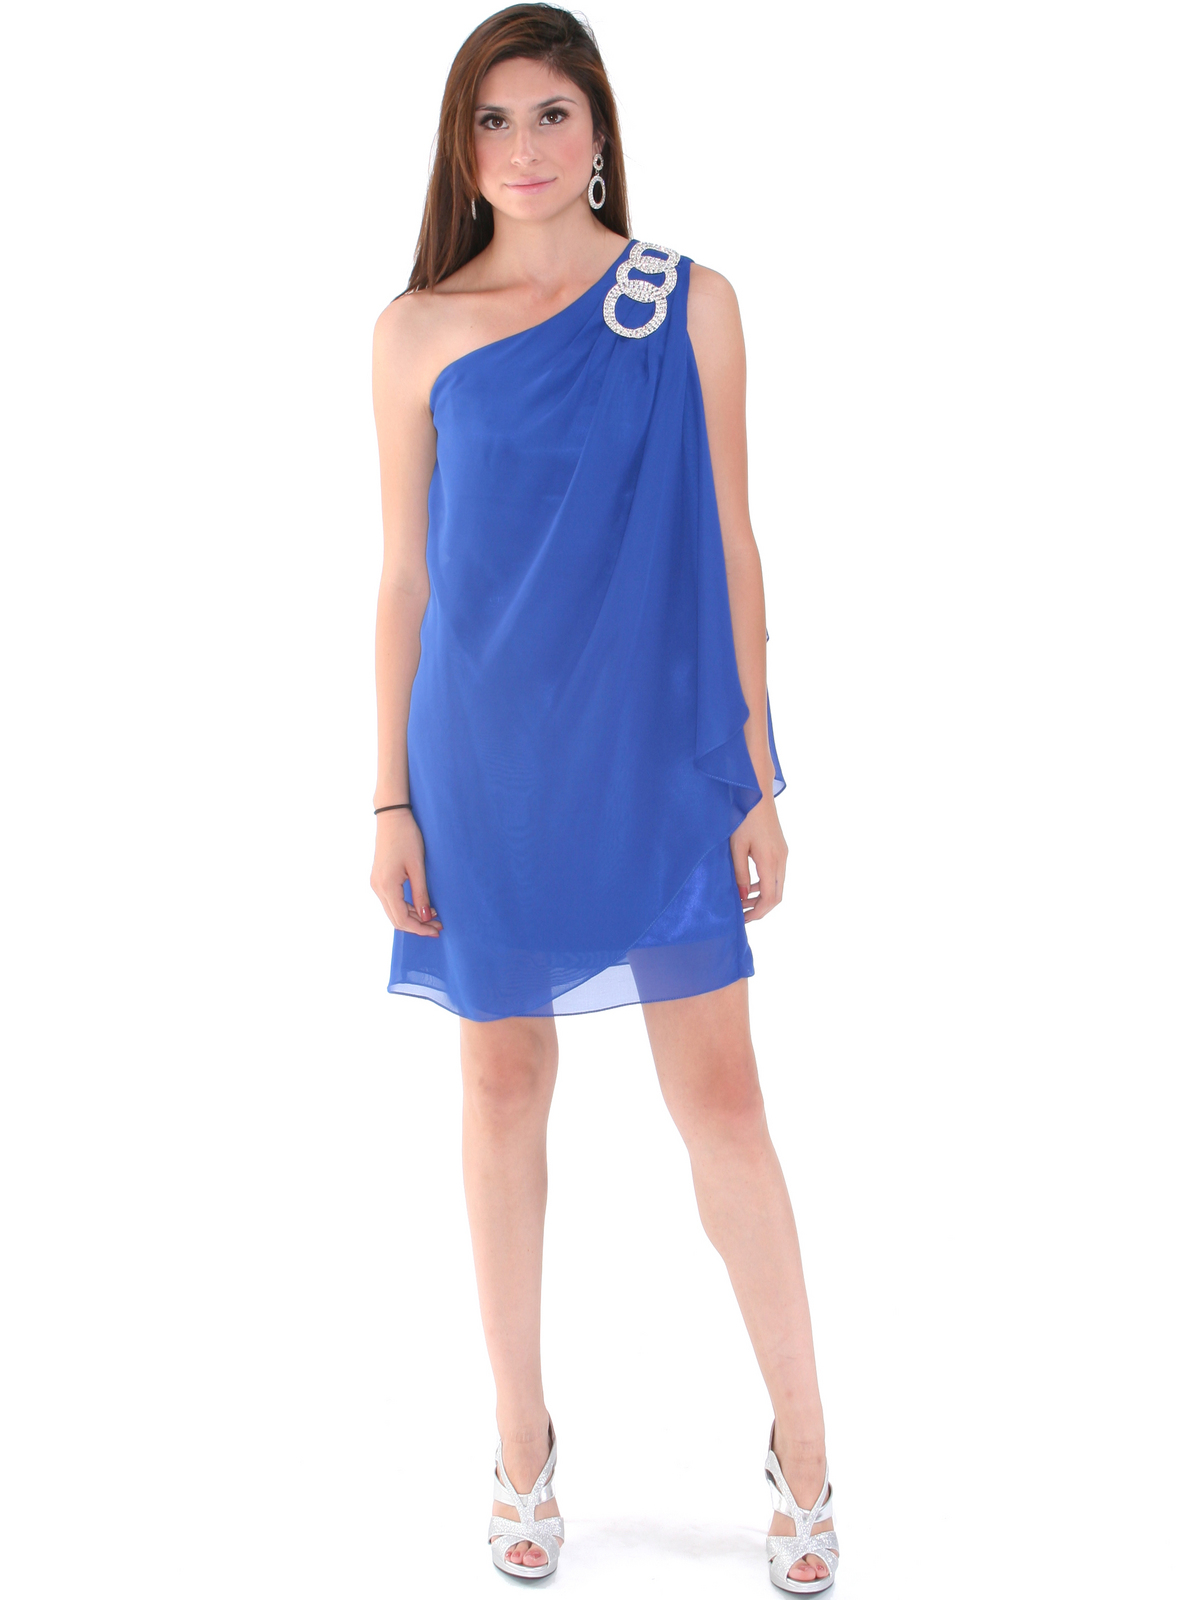 bebe royal blue dress fashion show collection dresses ask